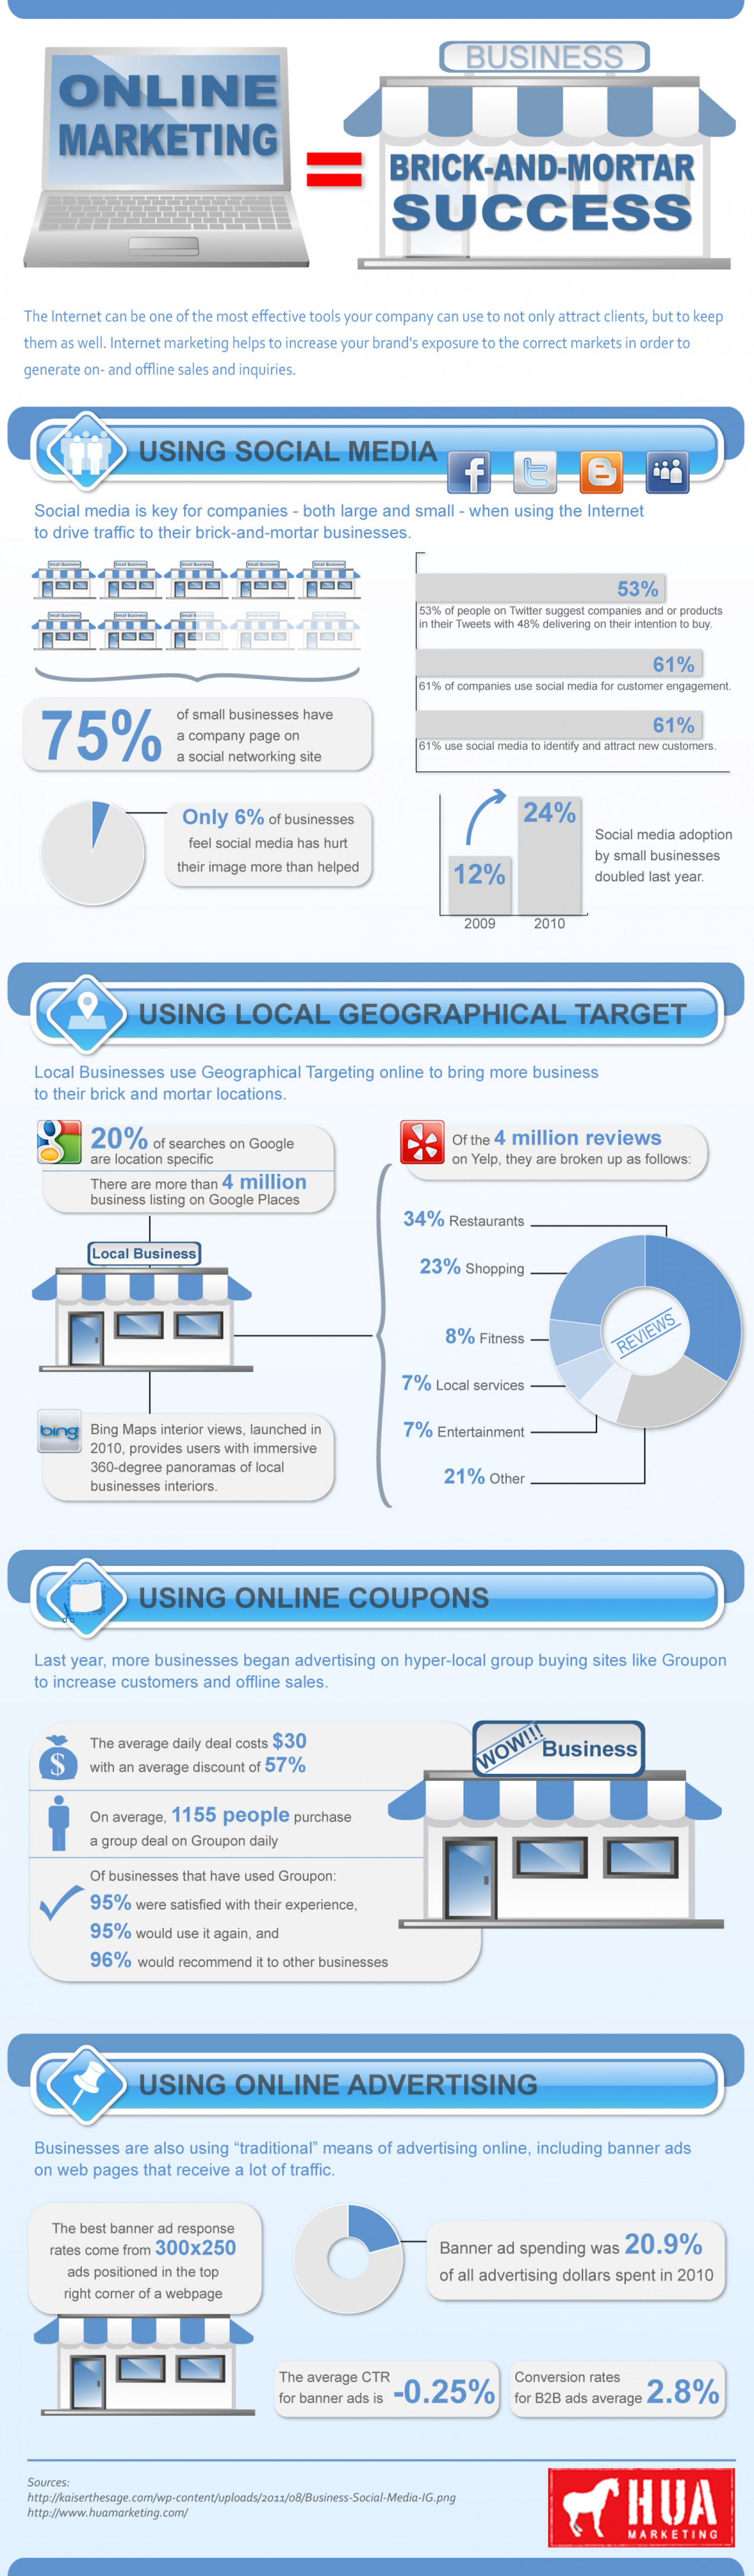 Online Marketing = Brick and Mortar Success Infographic